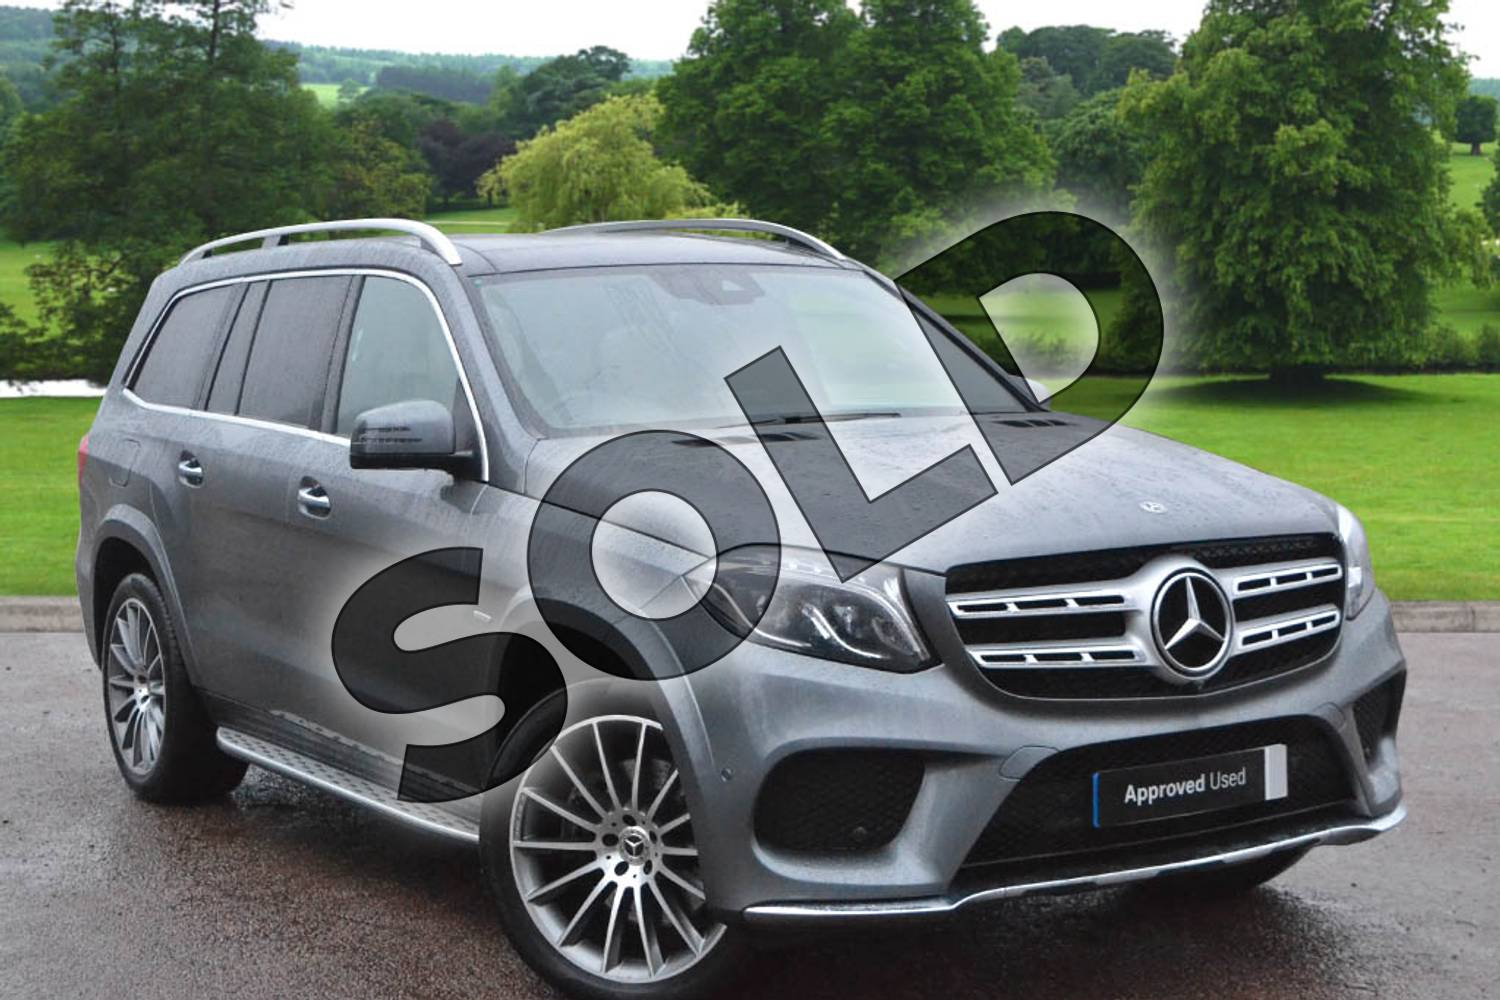 2019 Mercedes-Benz GLS Estate Special Edition GLS 350d 4Matic Grand Edition 5dr 9G-Tronic in selenite grey metallic at Mercedes-Benz of Grimsby